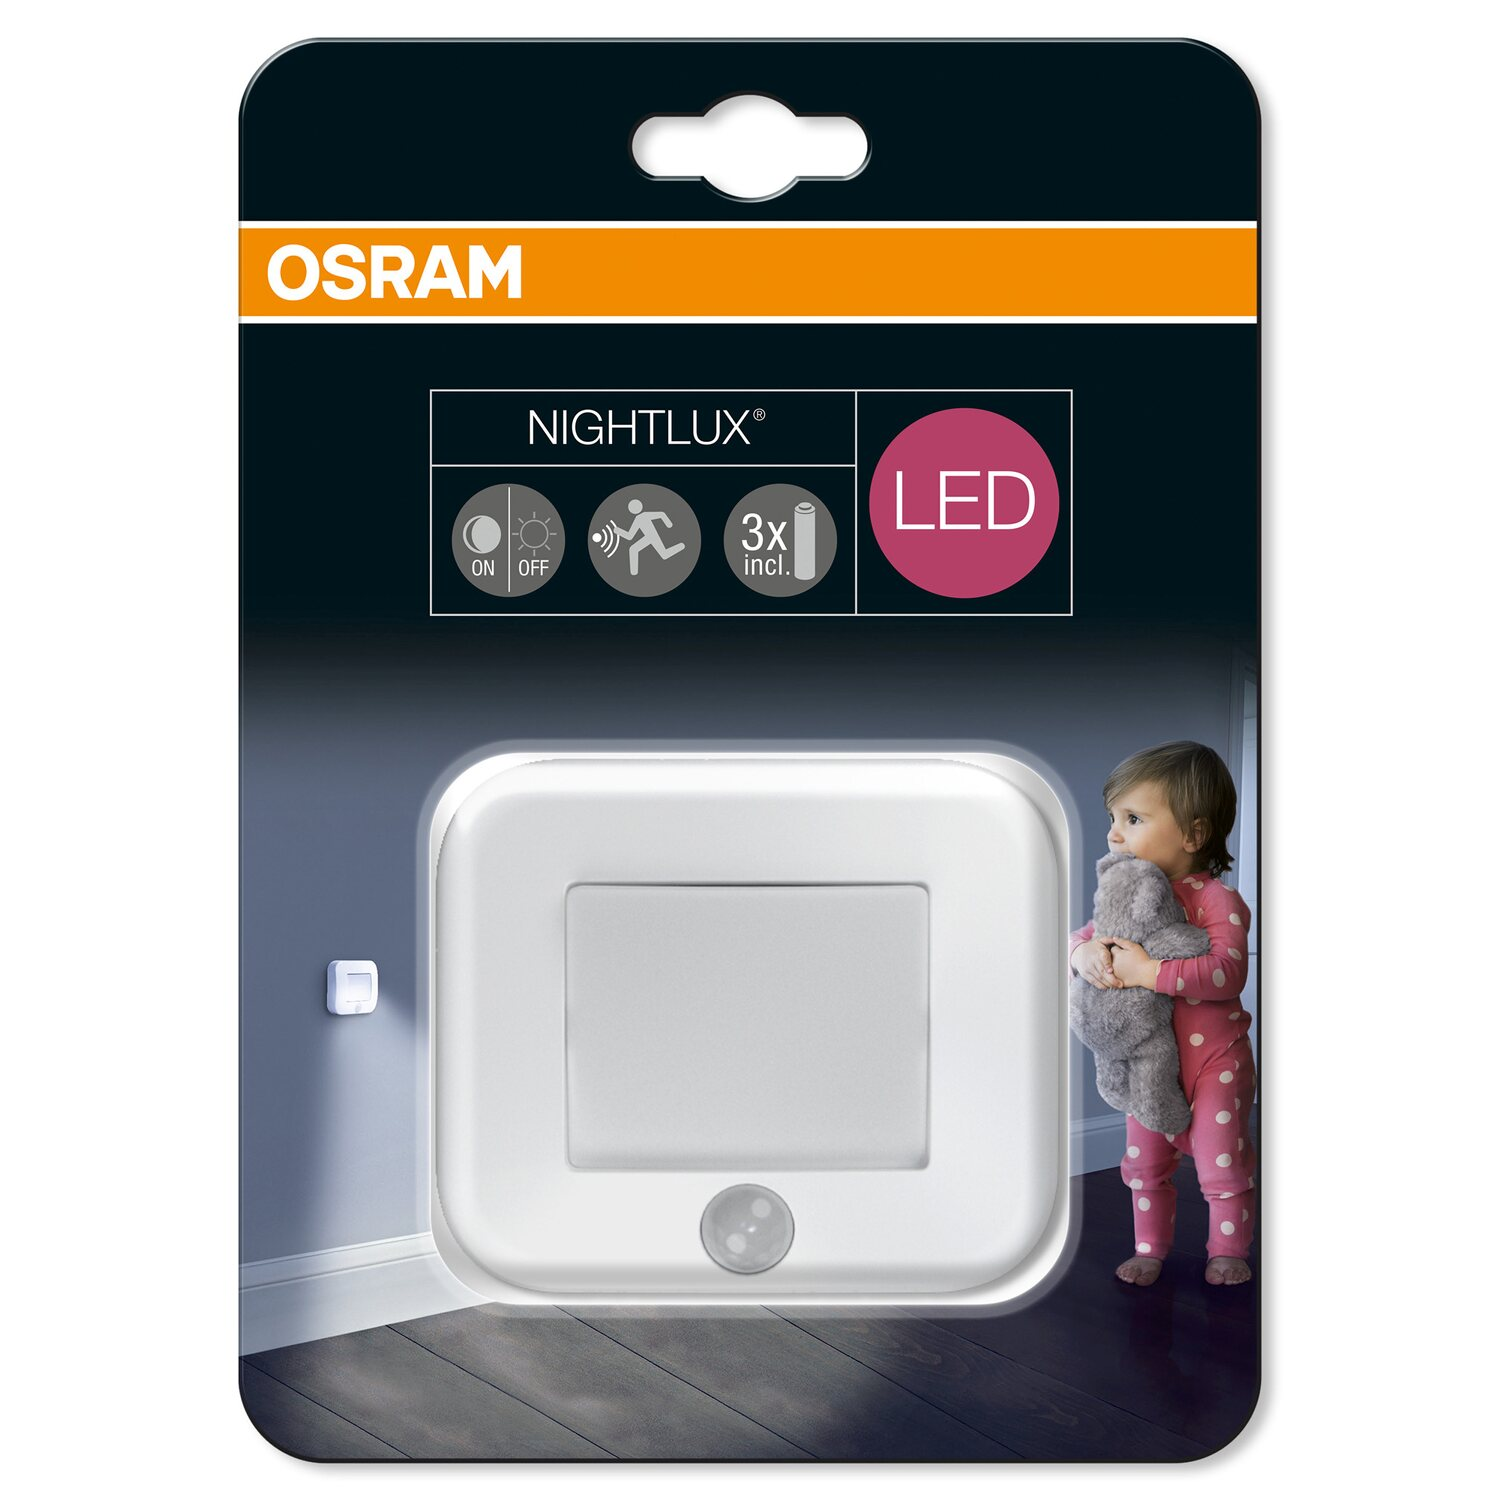 osram led nachtlicht nightlux hall mit sensor weiss kaufen bei obi. Black Bedroom Furniture Sets. Home Design Ideas